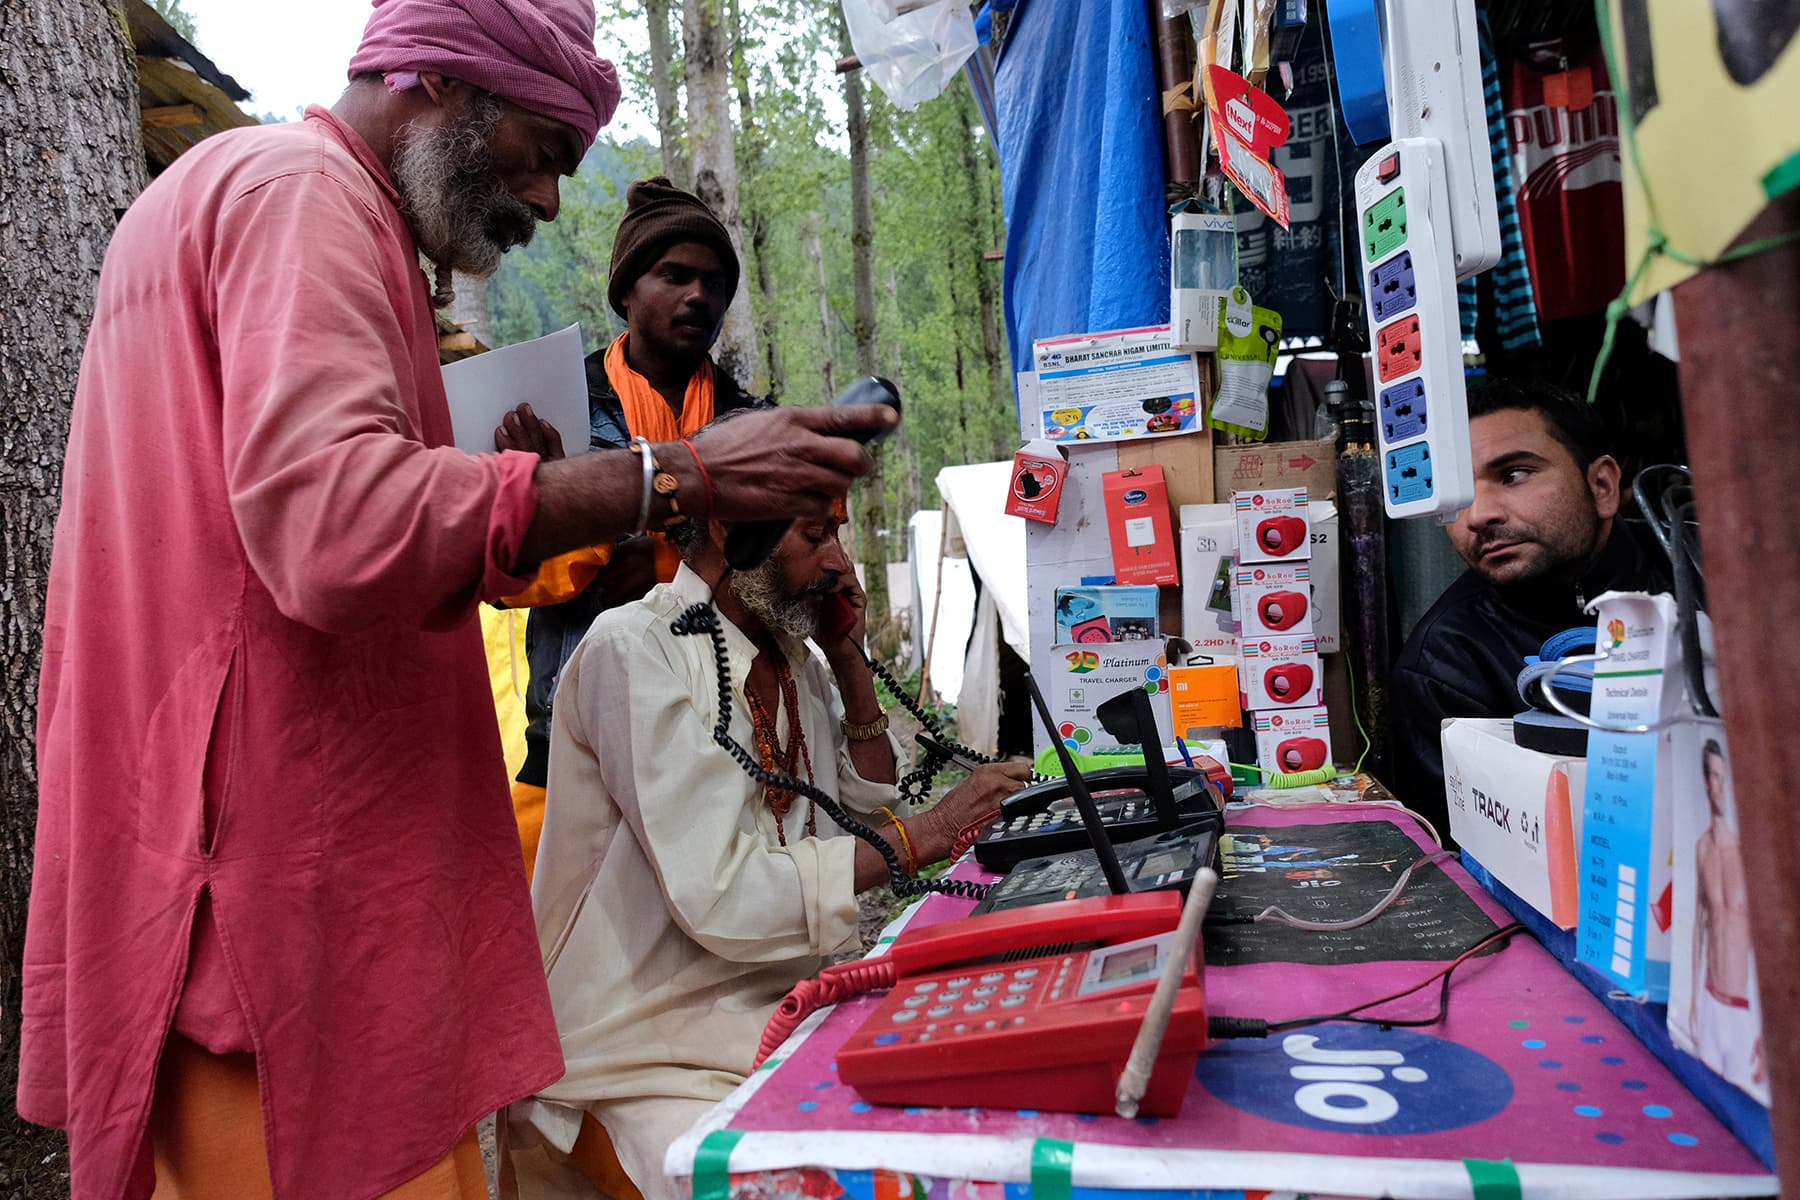 Hindu pilgrims make calls at a stall run by a Kashmiri Muslim before their journey towards the holy cave of Amarnath, where they worship an ice stalagmite that Hindus believe to be a symbol of Lord Shiva, at a base camp near Pahalgam in Indian-occupied Kashmir on July 26. — Reuters